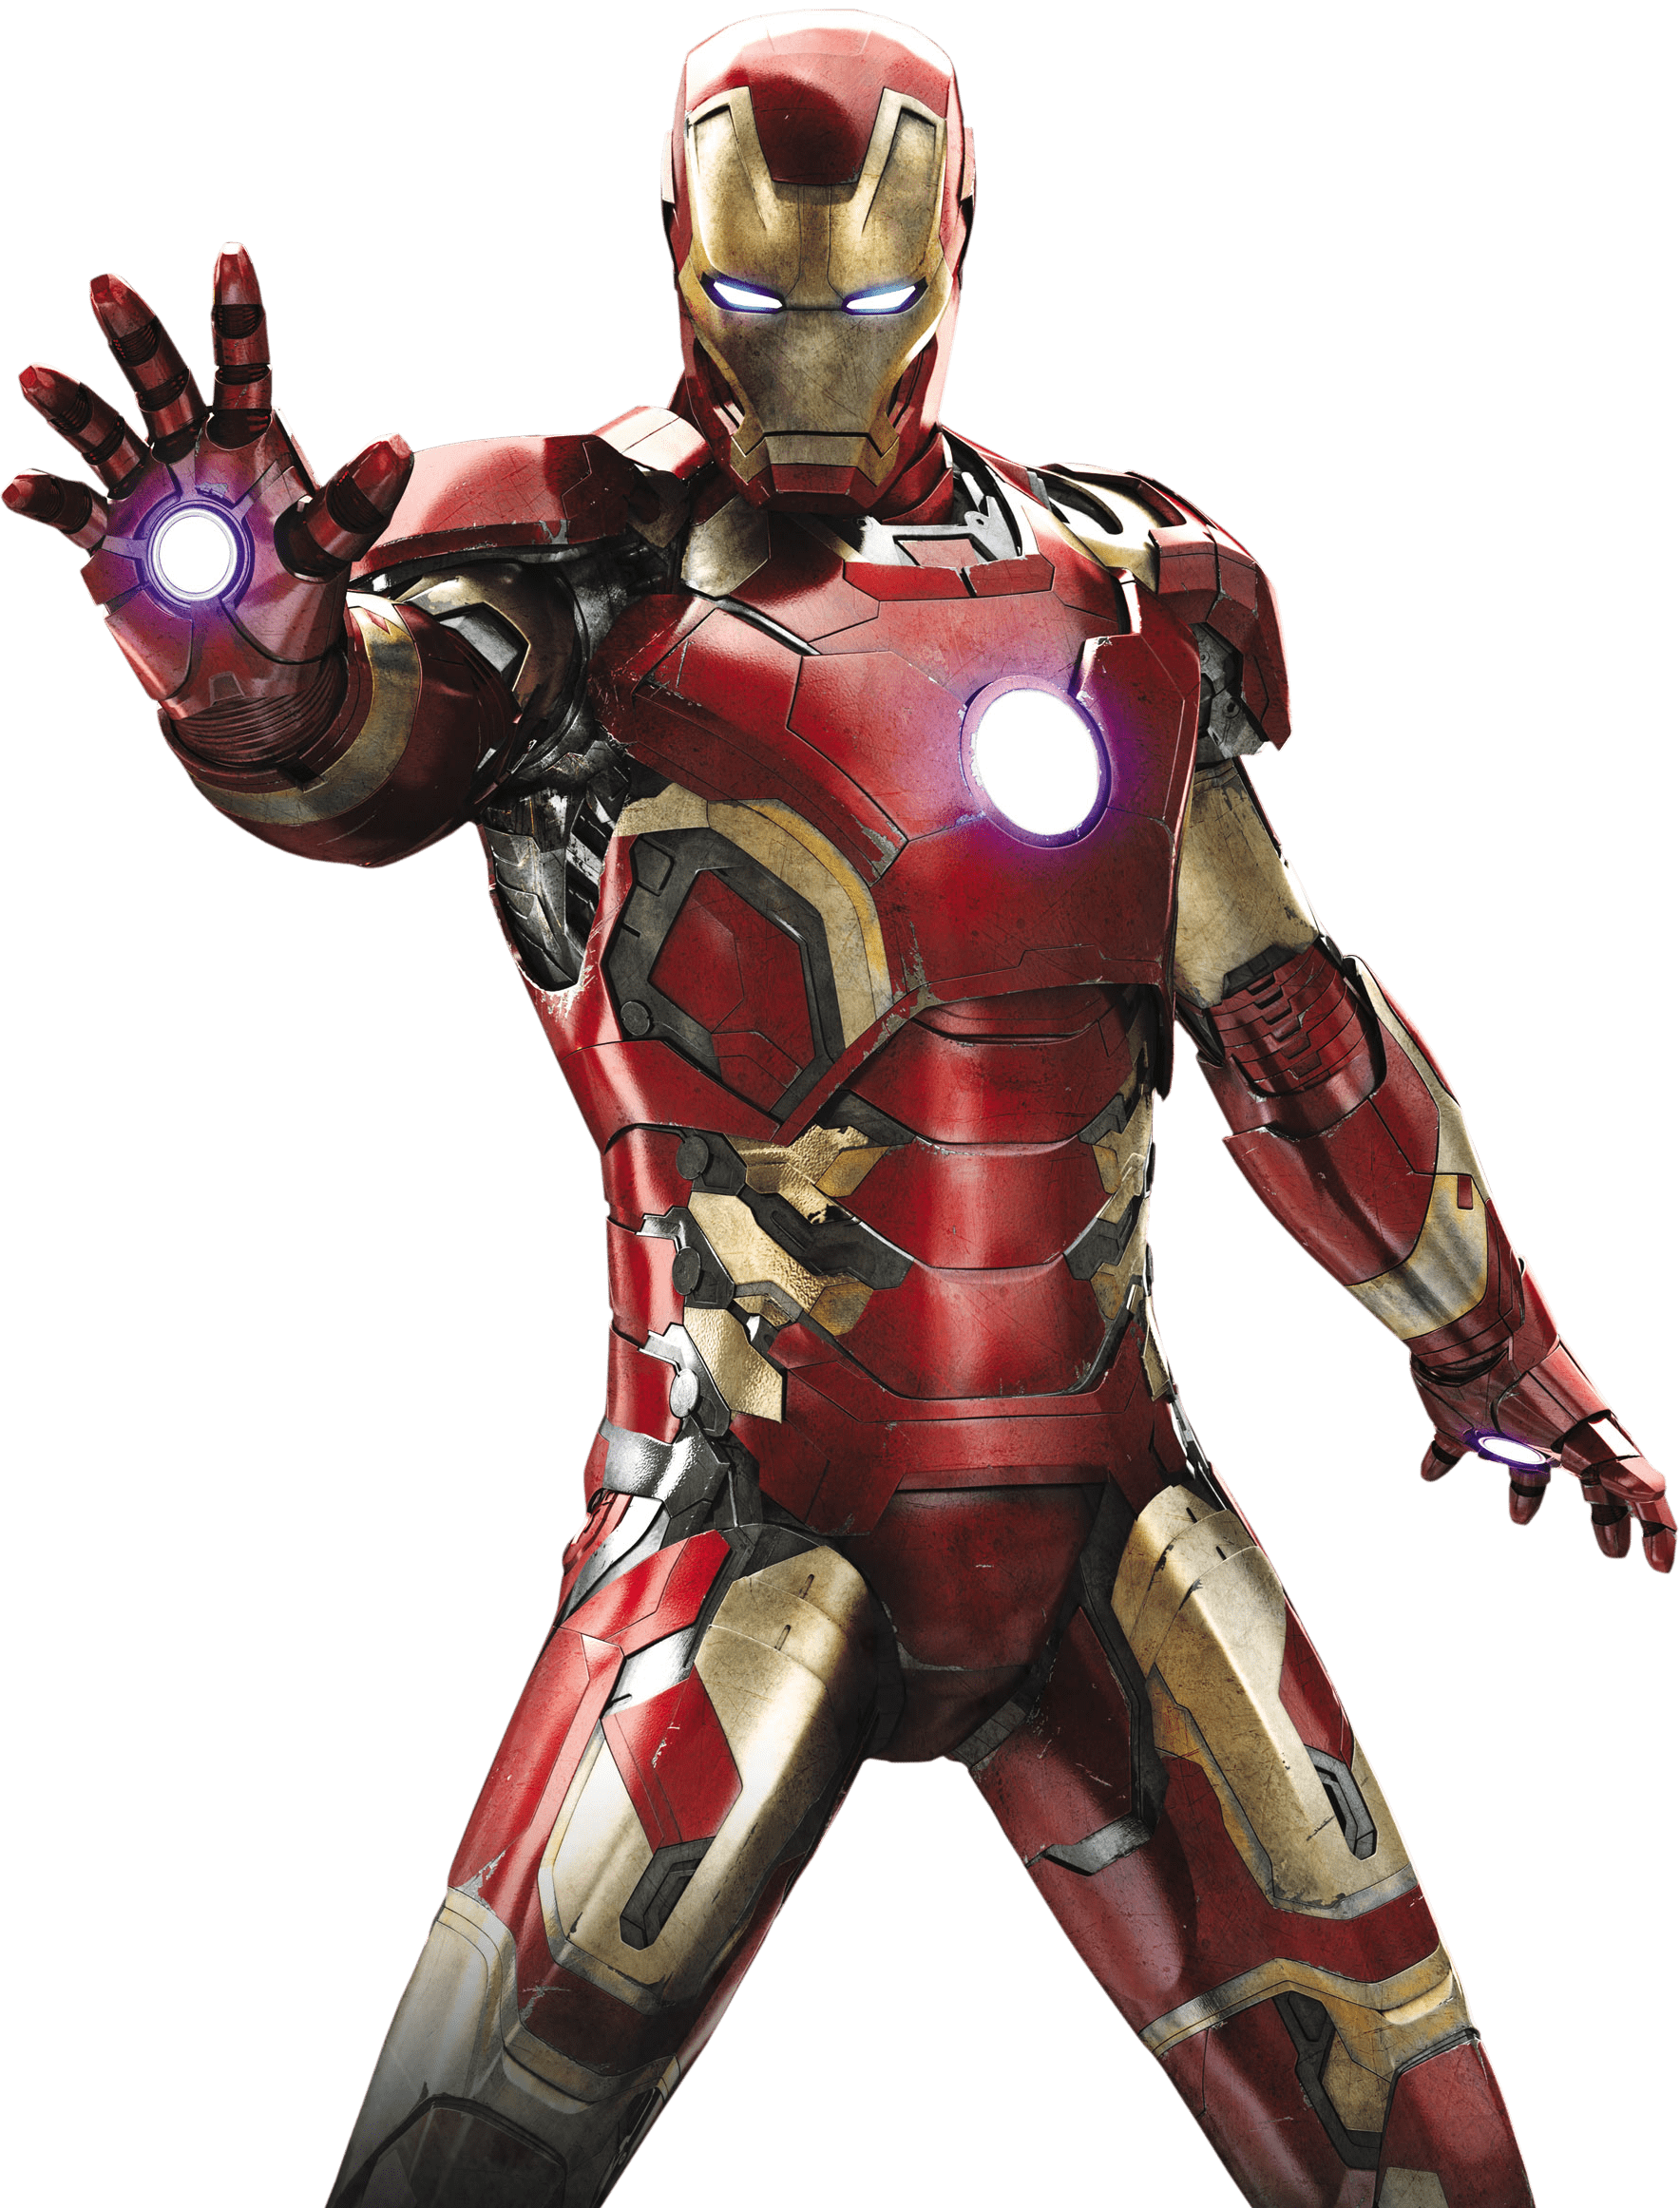 Ironman png. Iron man standing transparent